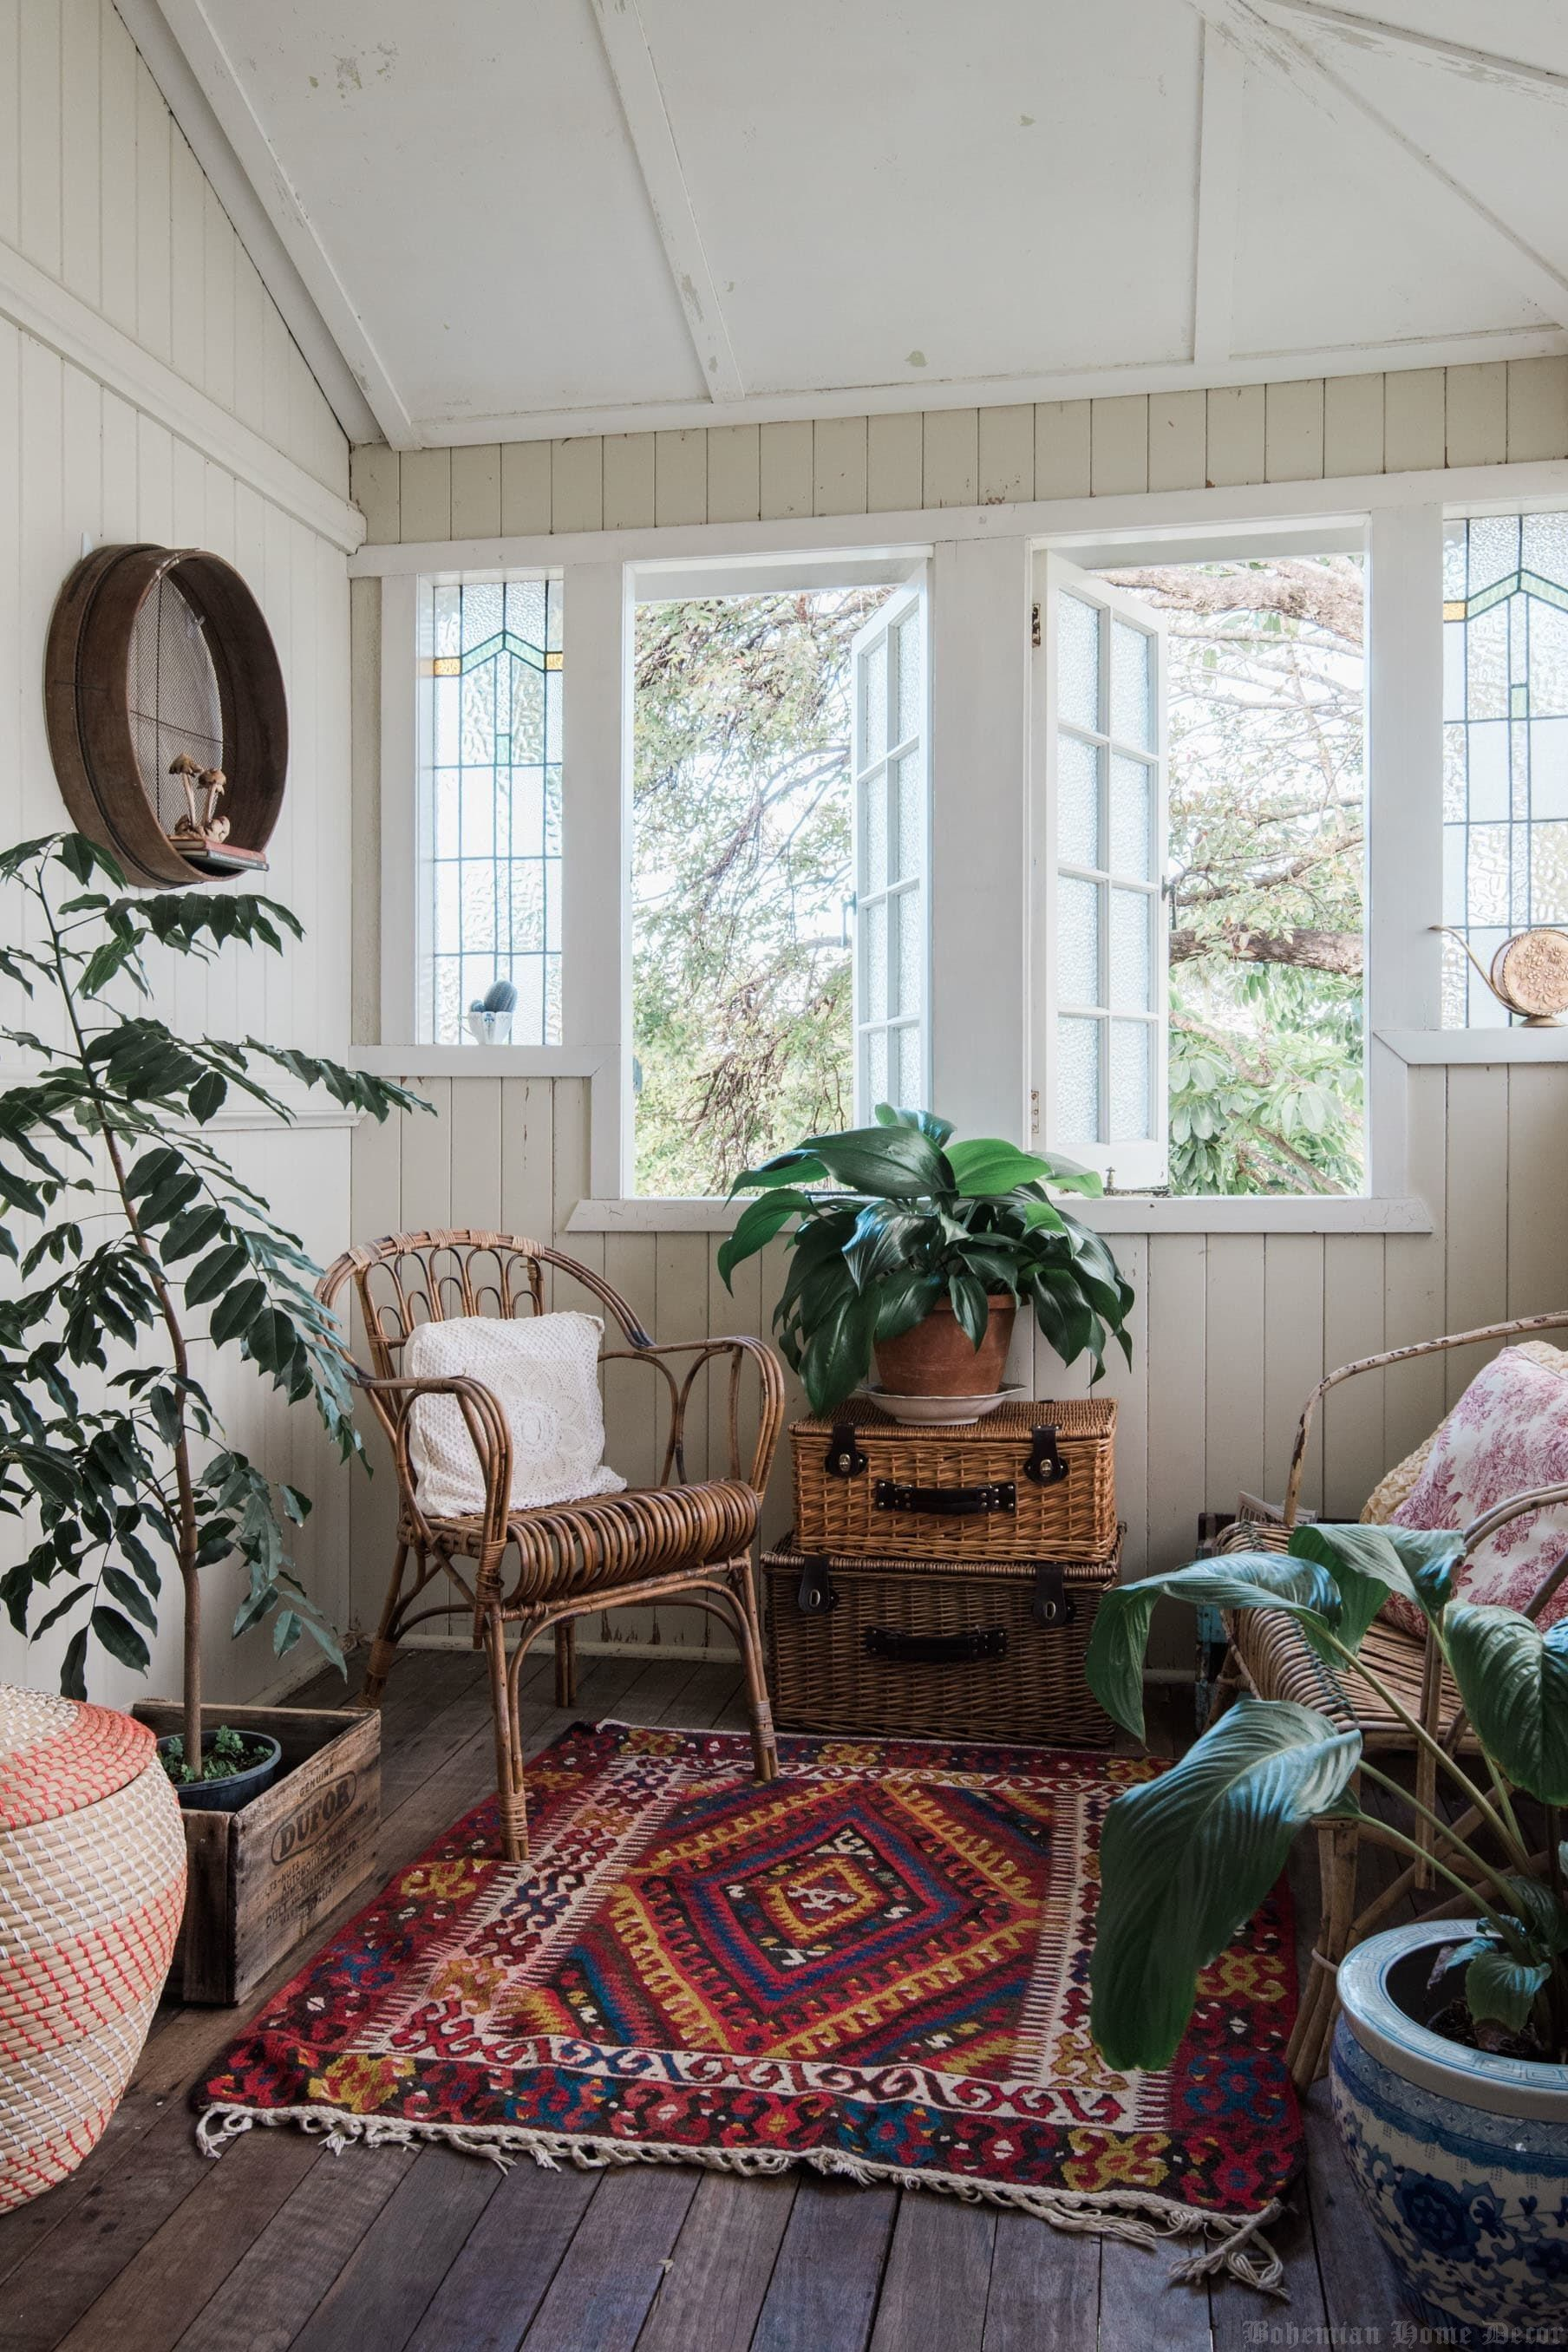 Is Bohemian Home Decor Worth [$] To You?